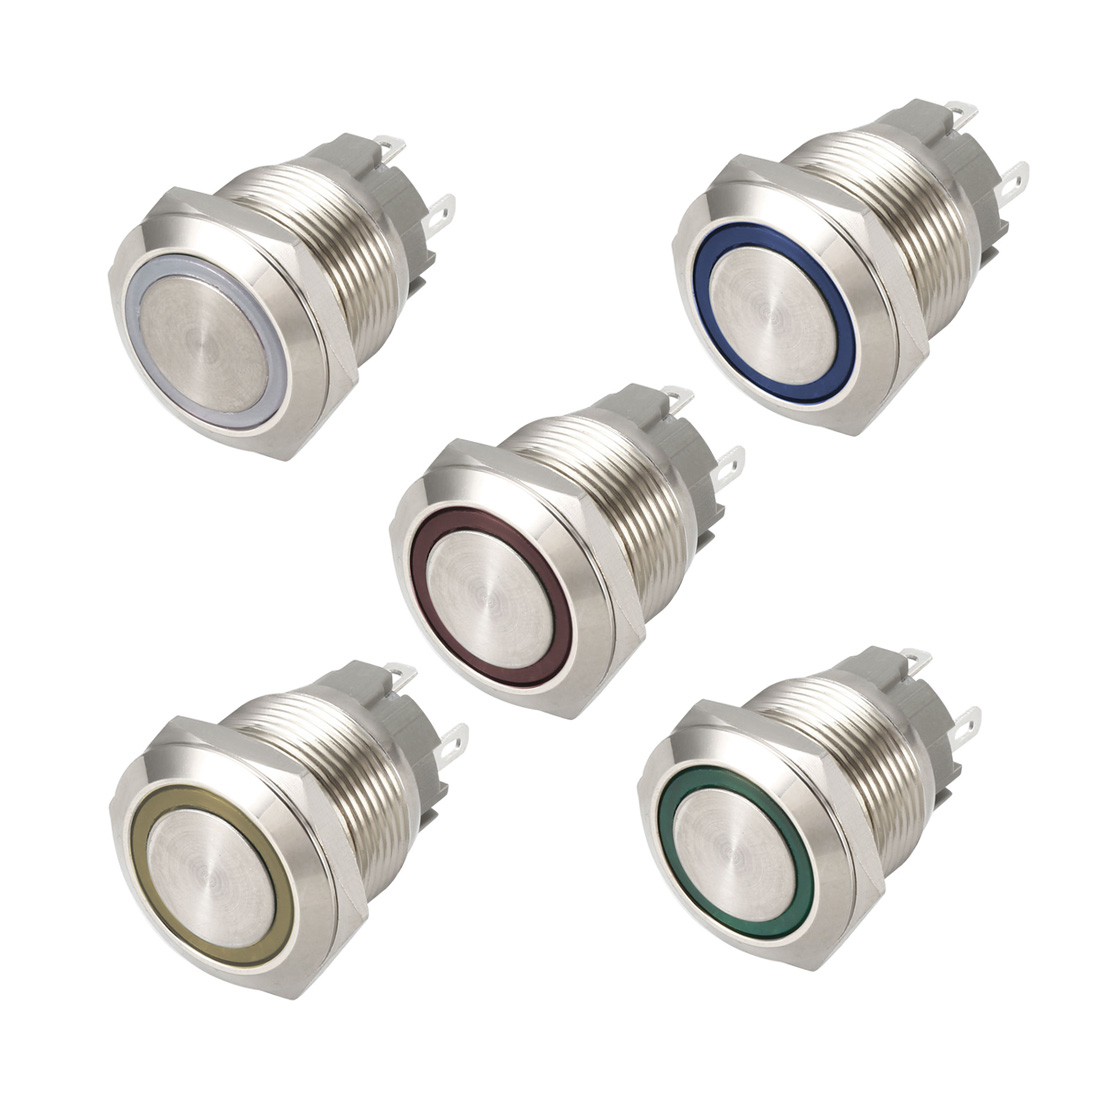 uxcell Push Button <font><b>Switch</b></font> Latching/Momentary Metal <font><b>19mm</b></font> Mounting Hole Dia. 1NO 12V White/Yellow/Blue/Green/Red <font><b>LED</b></font> Light image